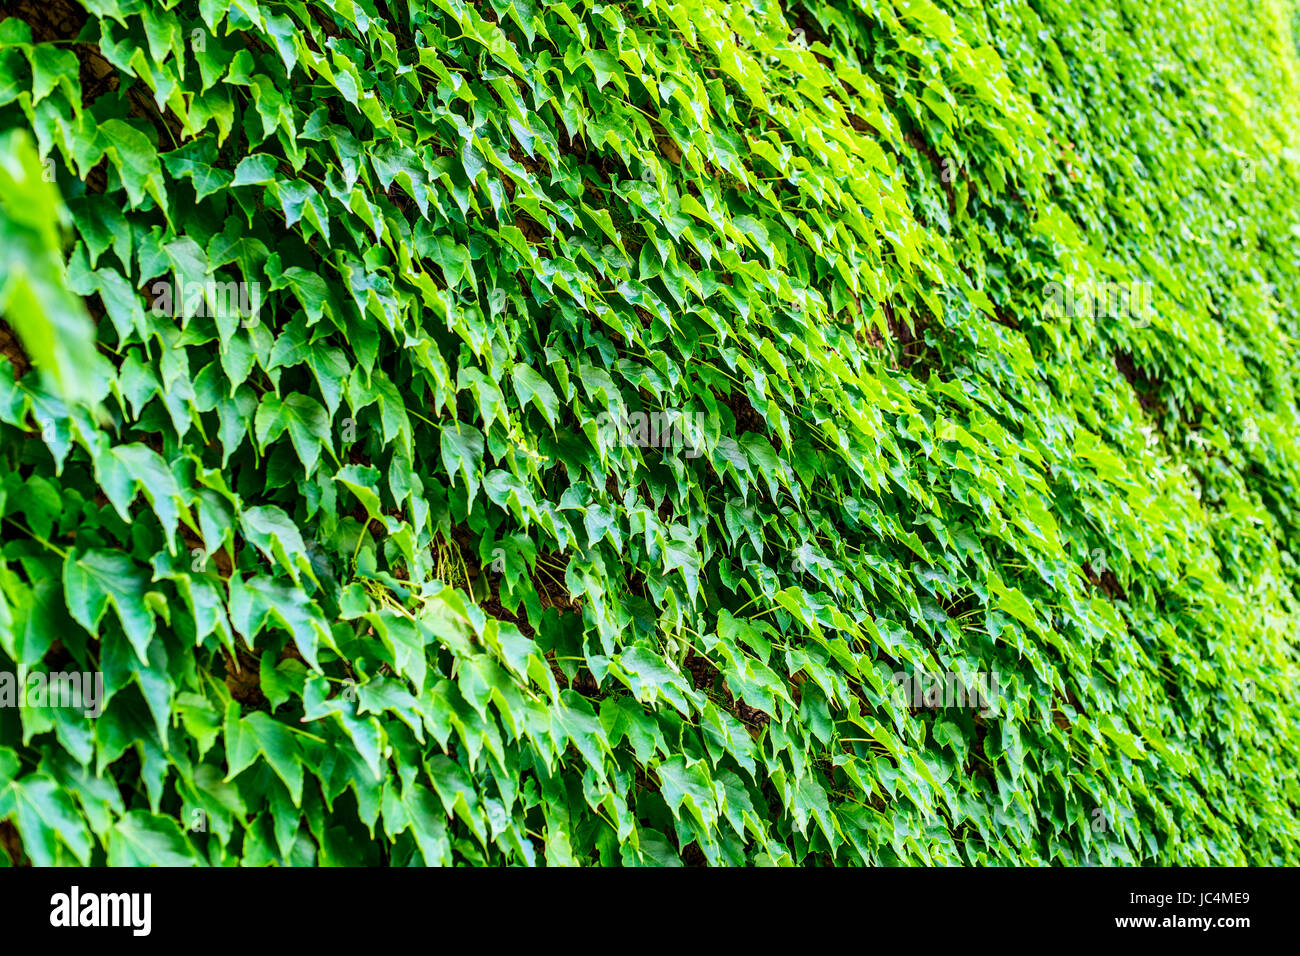 climbing ivy on building wall - sustainable building intertwined with green - Stock Image